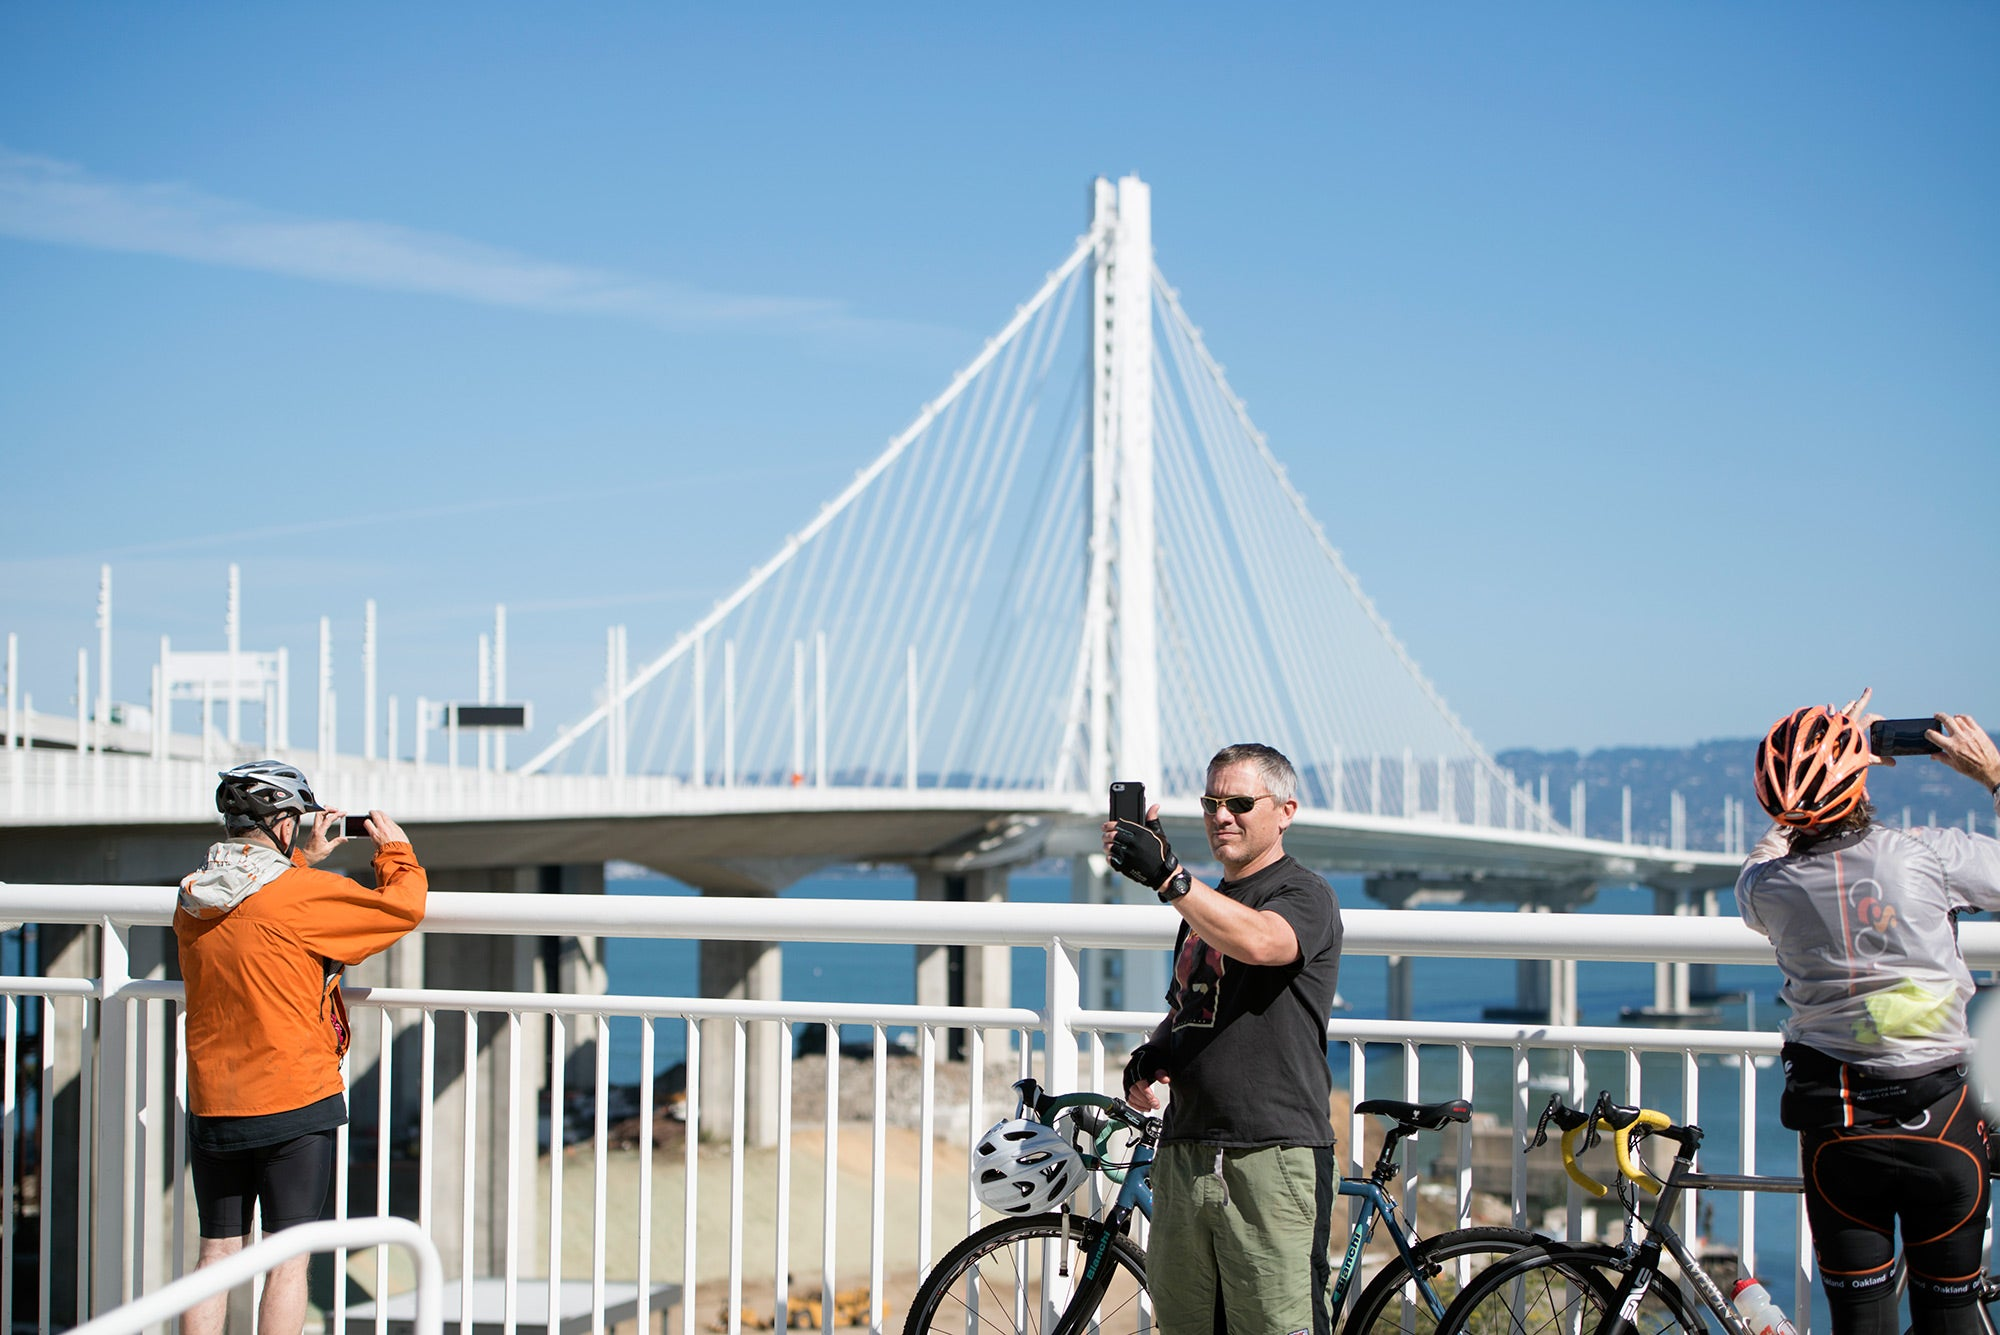 Cyclist takes selfie with East Span tower in the background